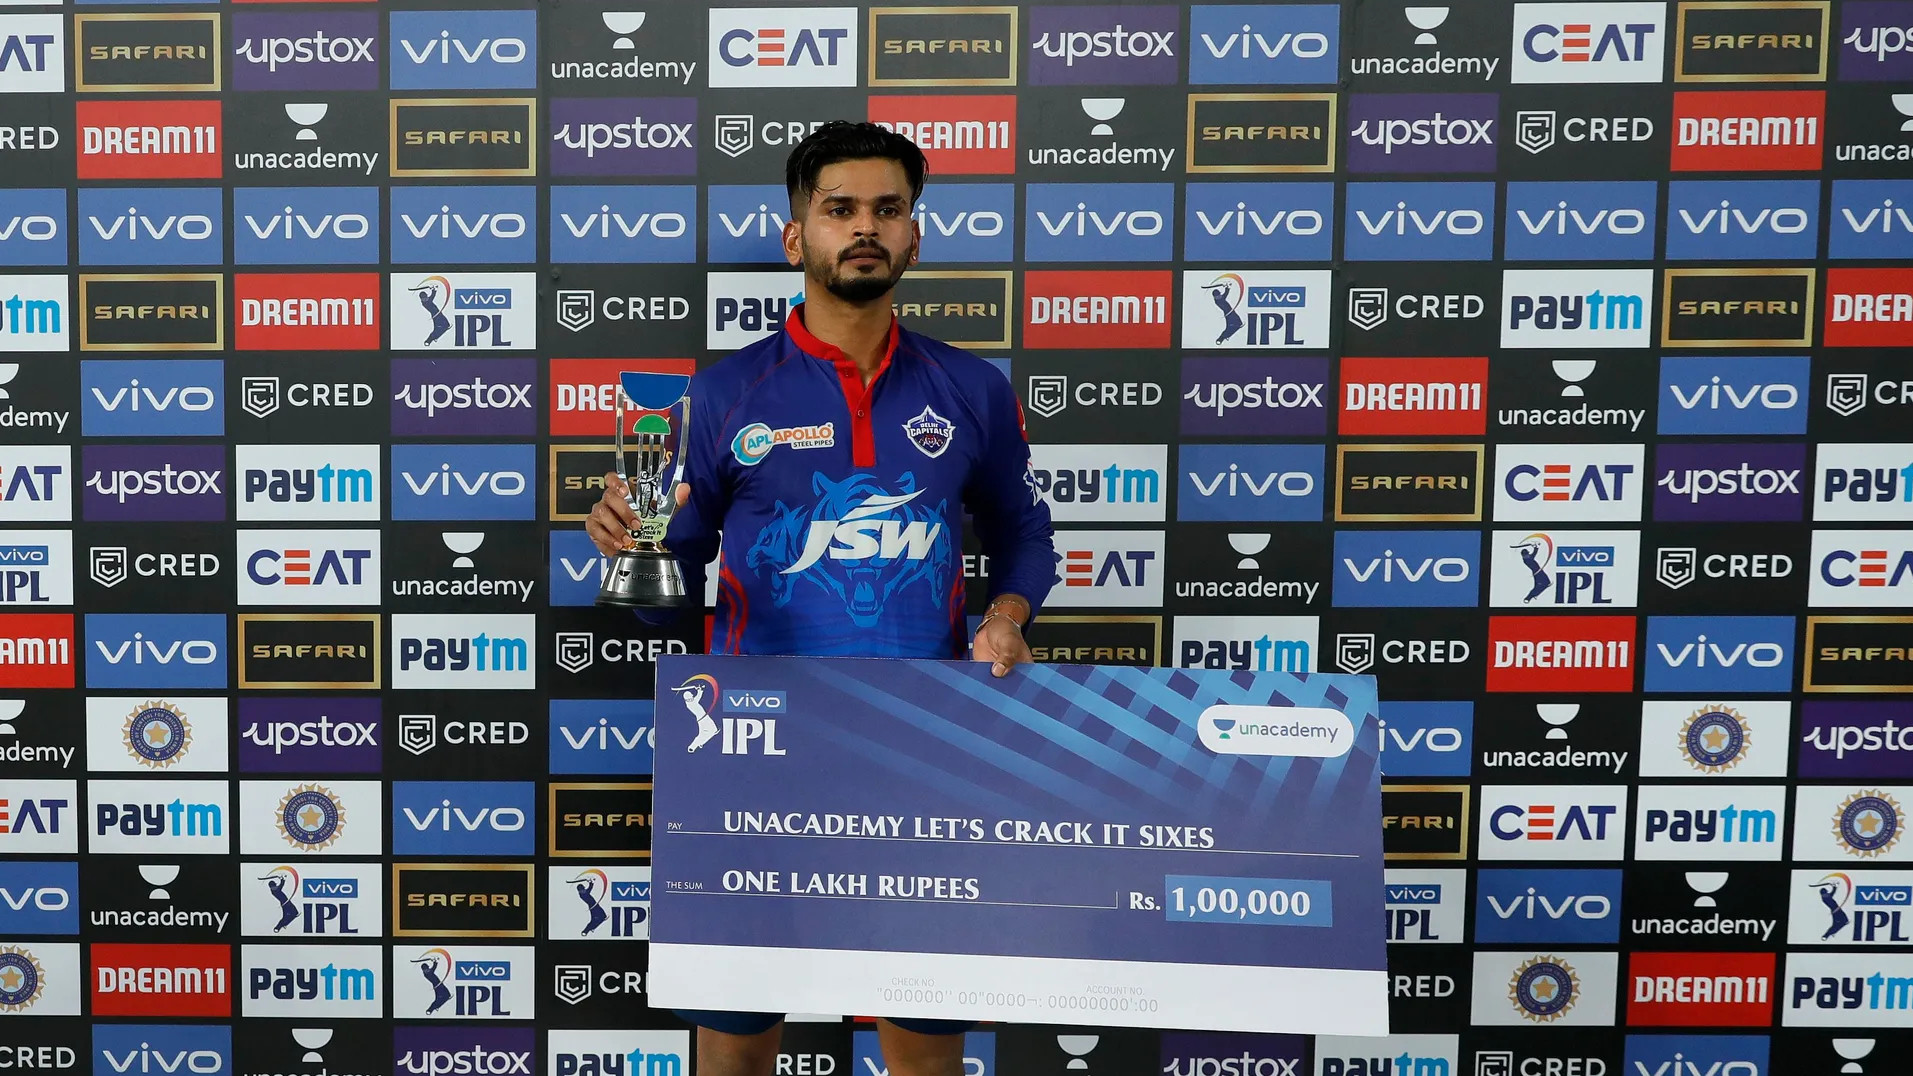 IPL 2021: Shreyas Iyer extremely happy with his 'special' comeback knock against SRH